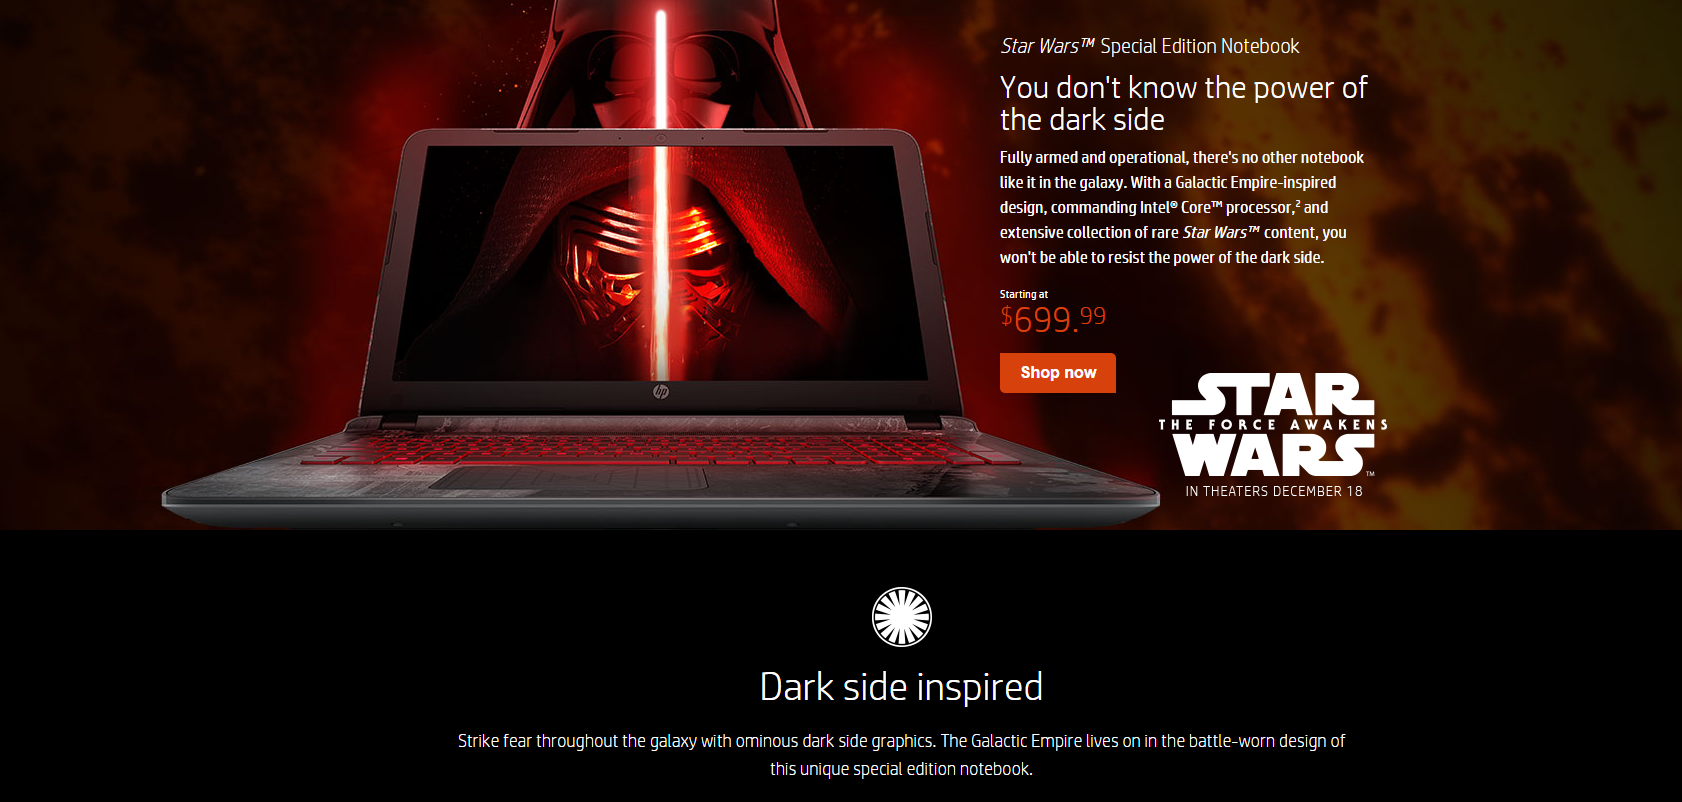 Image of a Star Wars themed laptop made by HP.